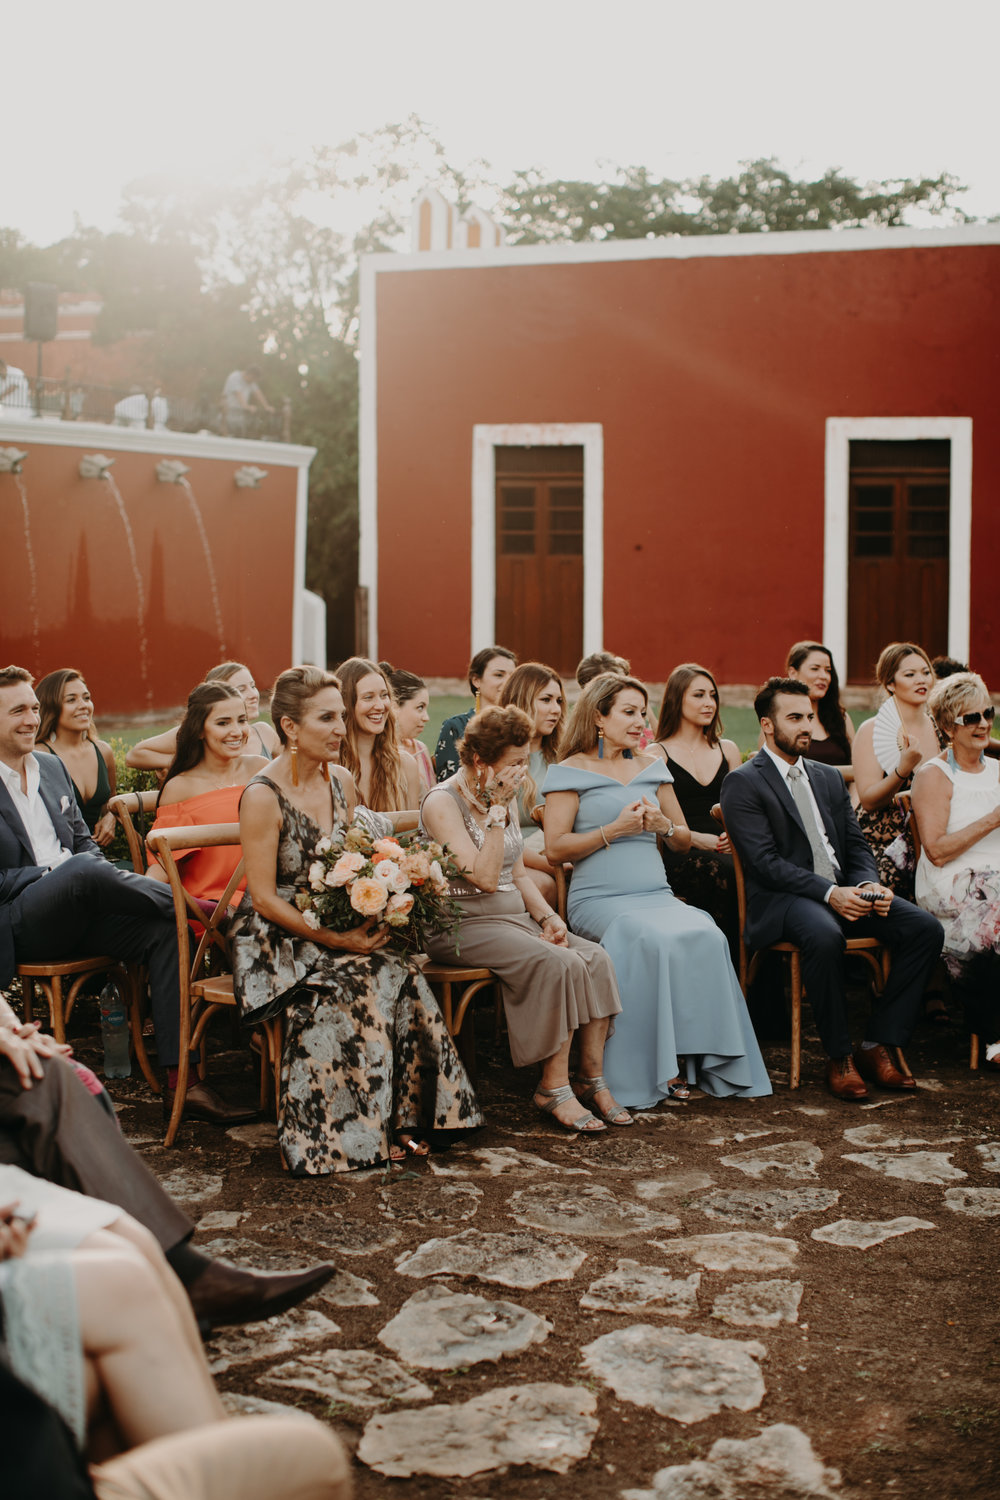 Hacienda Temozon Yucatan Mexico Wedding | Ida & Peter Emily Magers Photography-1021.jpg